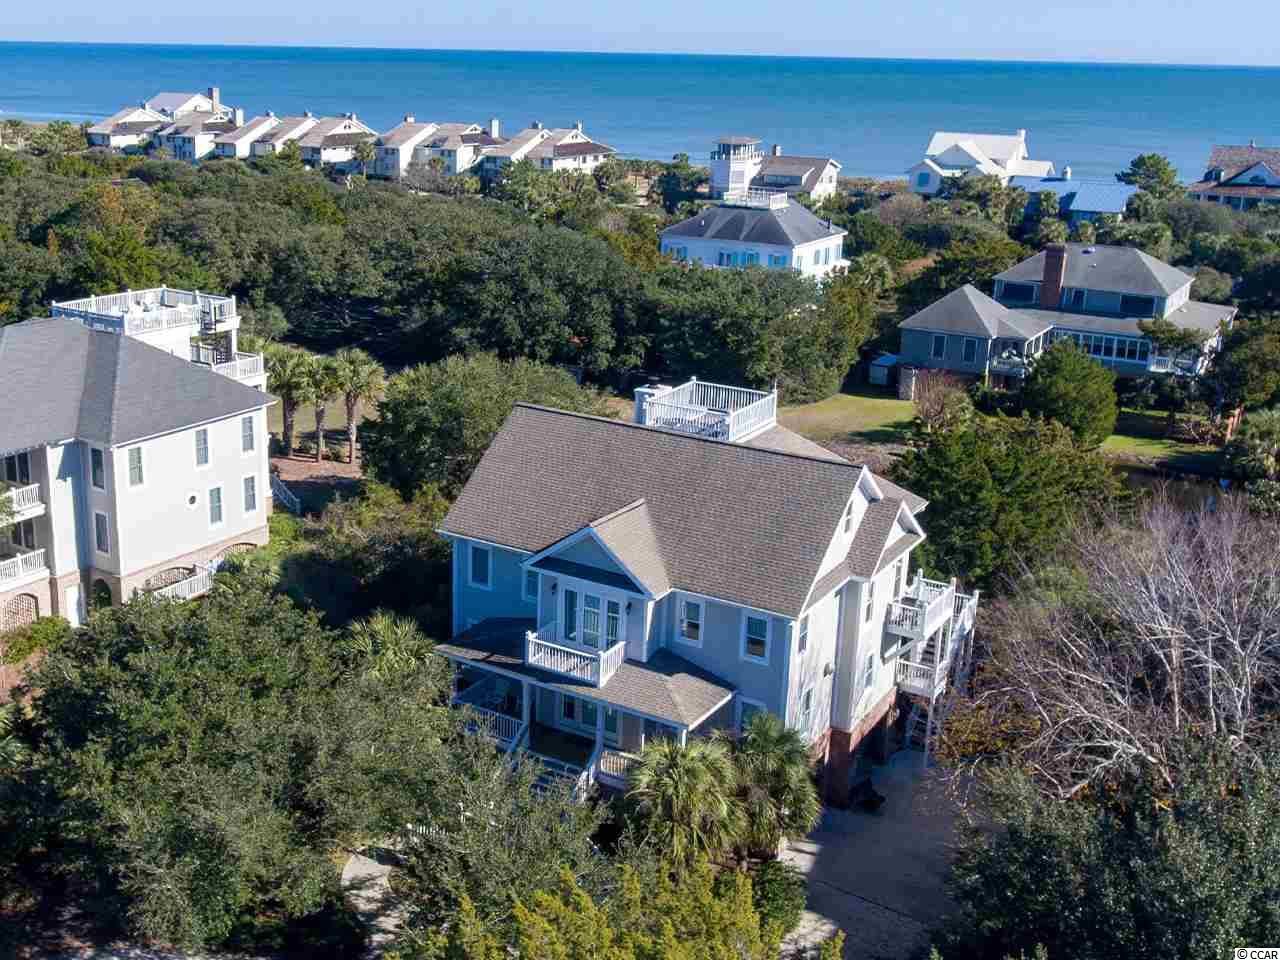 Open the doors and hear the ocean waves rolling in. Inviting you to come walk and play on the beach just a few steps or bike or golf cart ride away. Or lull you to sleep at night or a relaxing afternoon nap. This beautiful 3rd row home has ocean views and sits on a lake to the east and a lake to the west. Open floor plan with plenty of bright refreshing space and 7 bedrooms and 6 baths. 4 Bedrooms down with a playroom/den. Master and open great room/dining/kitchen up. Huge screen porches up and down on the ocean side and an open porch at the front door to the west. 2 bedrooms next floor up share a bath. Keep heading up another flight of stairs to the rooftop deck offering 360 degree views of all of DeBordieu and the ocean and creeks. Just a short exciting golf cart ride to the oceanfront Beach Club which offers fine and casual dining, the Blue Heron Beach Grill, Gazebo Tiki Bar, two pools and a playground with basketball and volleyball court. DeBordieu also offers The Golf Club with the private Pete Dye golf course and Tennis Center and Fitness Center. DeBordieu encompasses approximately 2700 acres of natural beauty from the ocean and beaches and wildlife and woods to the creeks and North Inlet. Excellent boating and fishing ! Biking and golf carts ! Beautiful sunrises and sunsets ! Family fun and activities are endless ! DeBordieu is all safe and secure with a 24 hour manned security gate. Located just 30 miles south of Myrtle Beach and 60 miles north of Charleston ! Come live the life that makes DeBordieu, DeBordieu !            A place where man and nature live together in harmony !